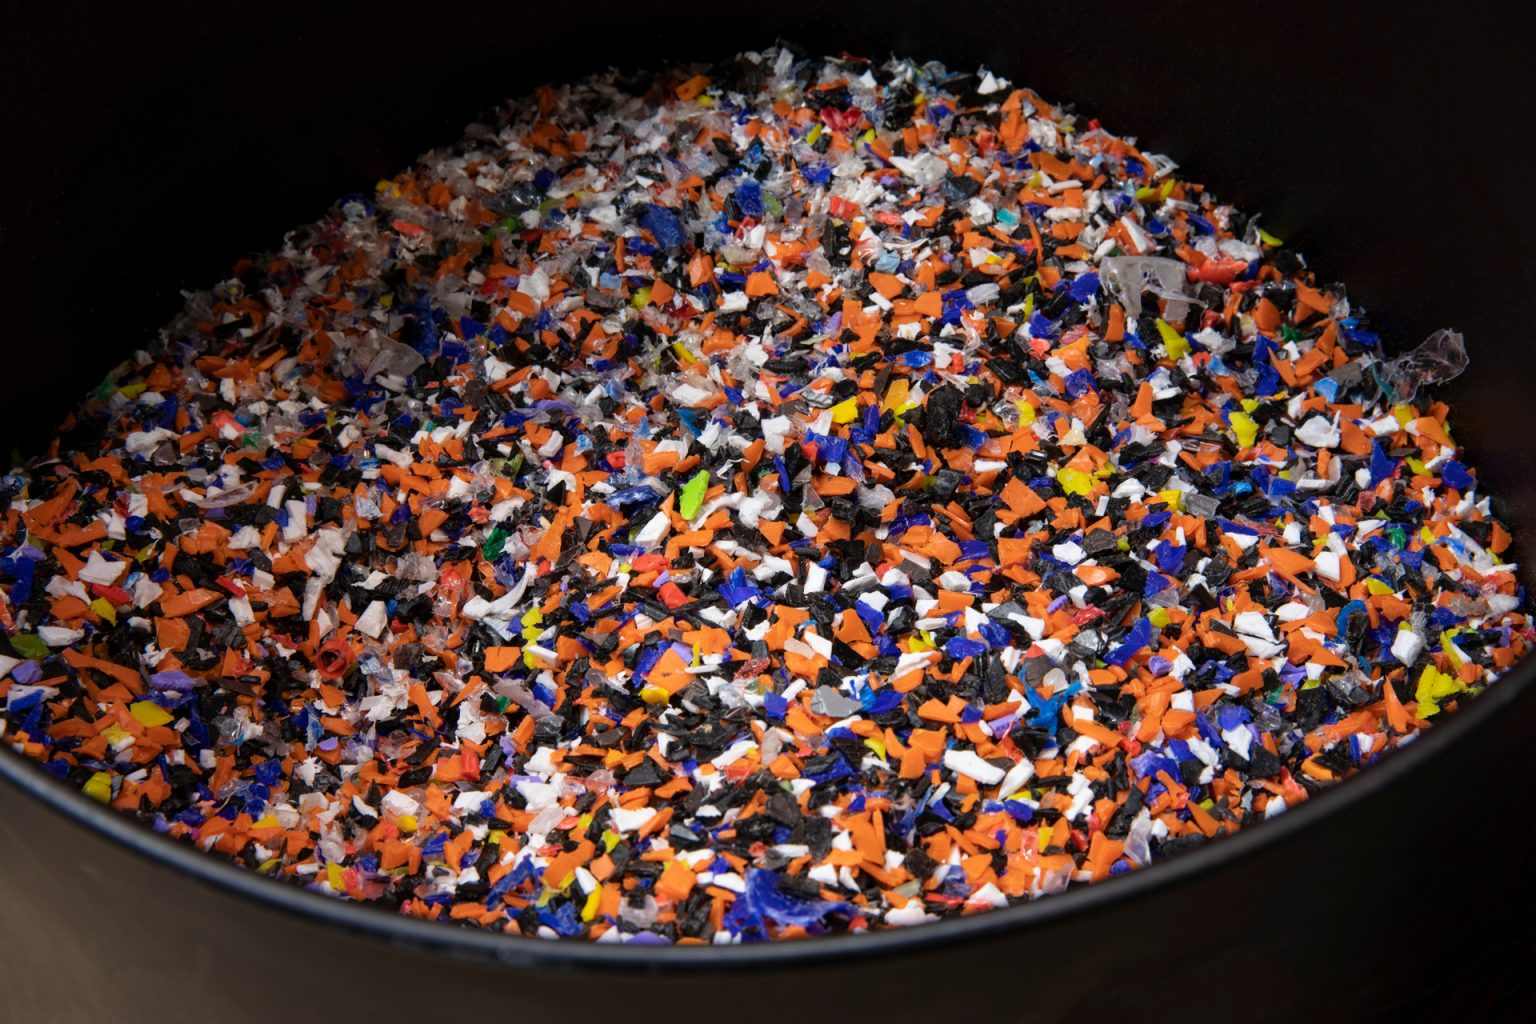 Eco-recycled - Recycling 100% of industrial plastic waste